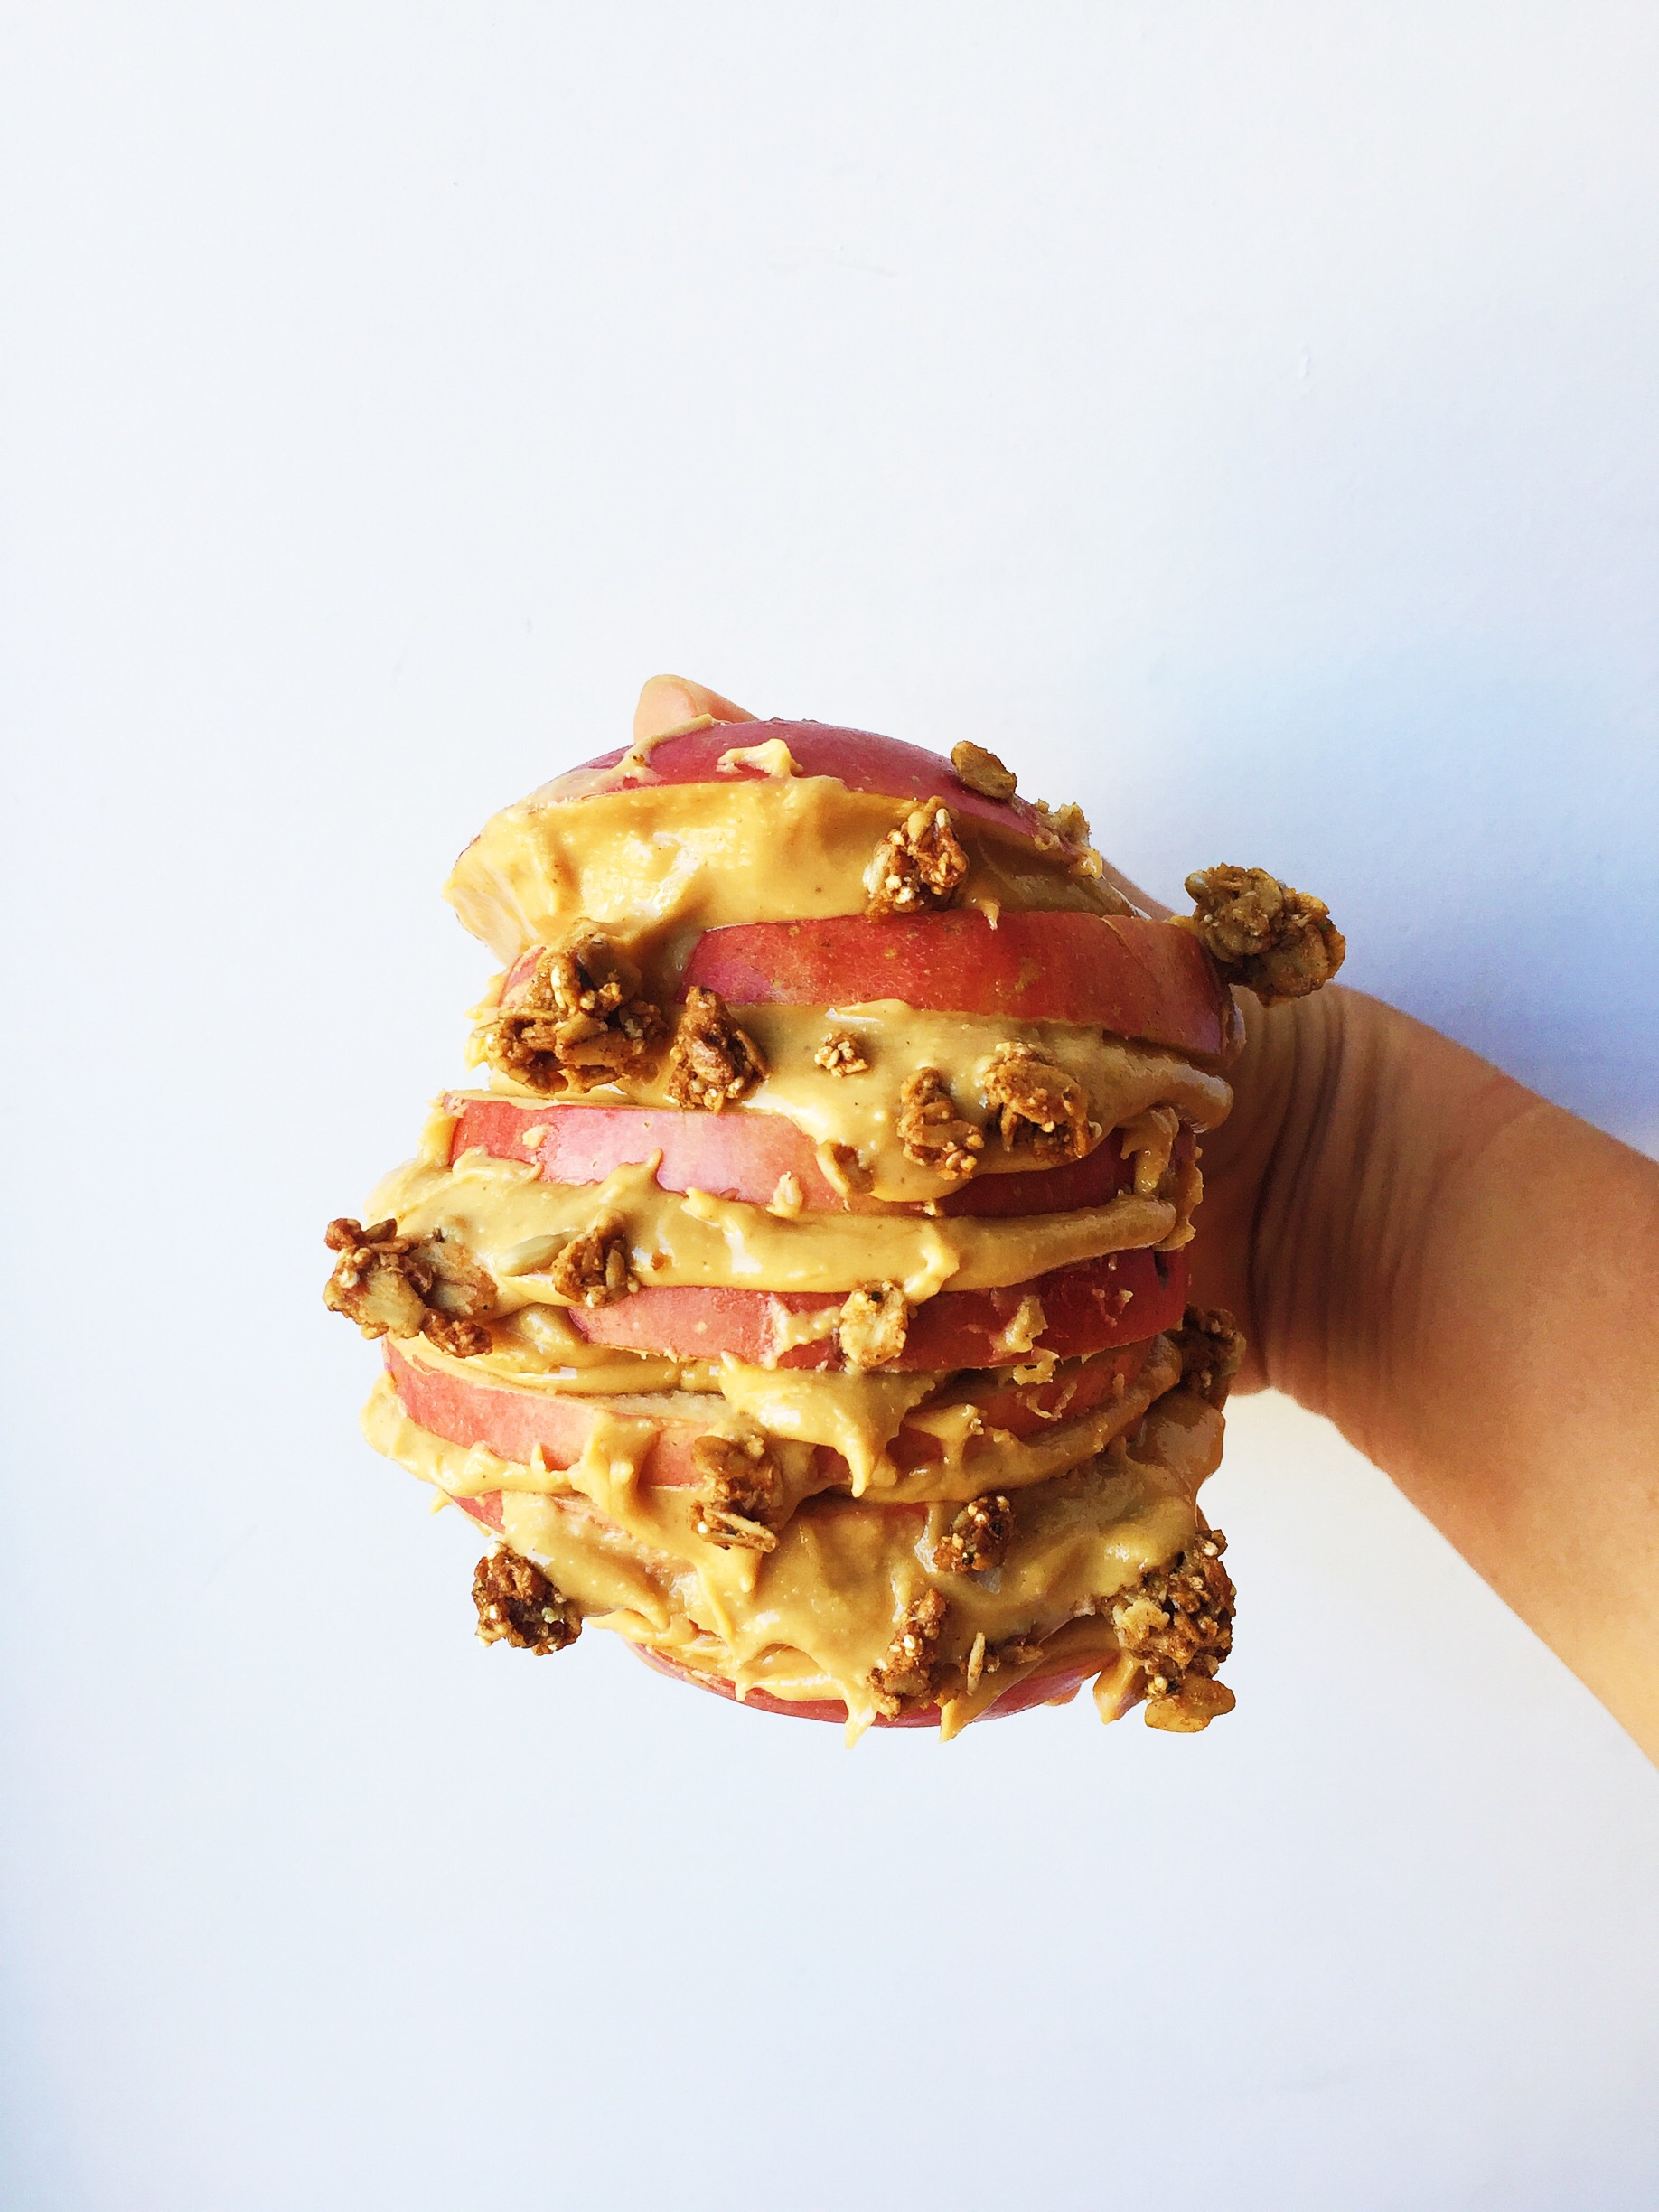 A monster of an apple/peanut butter sandwich! This can also double as a lunch, or split with a friend if you're recreating this :)